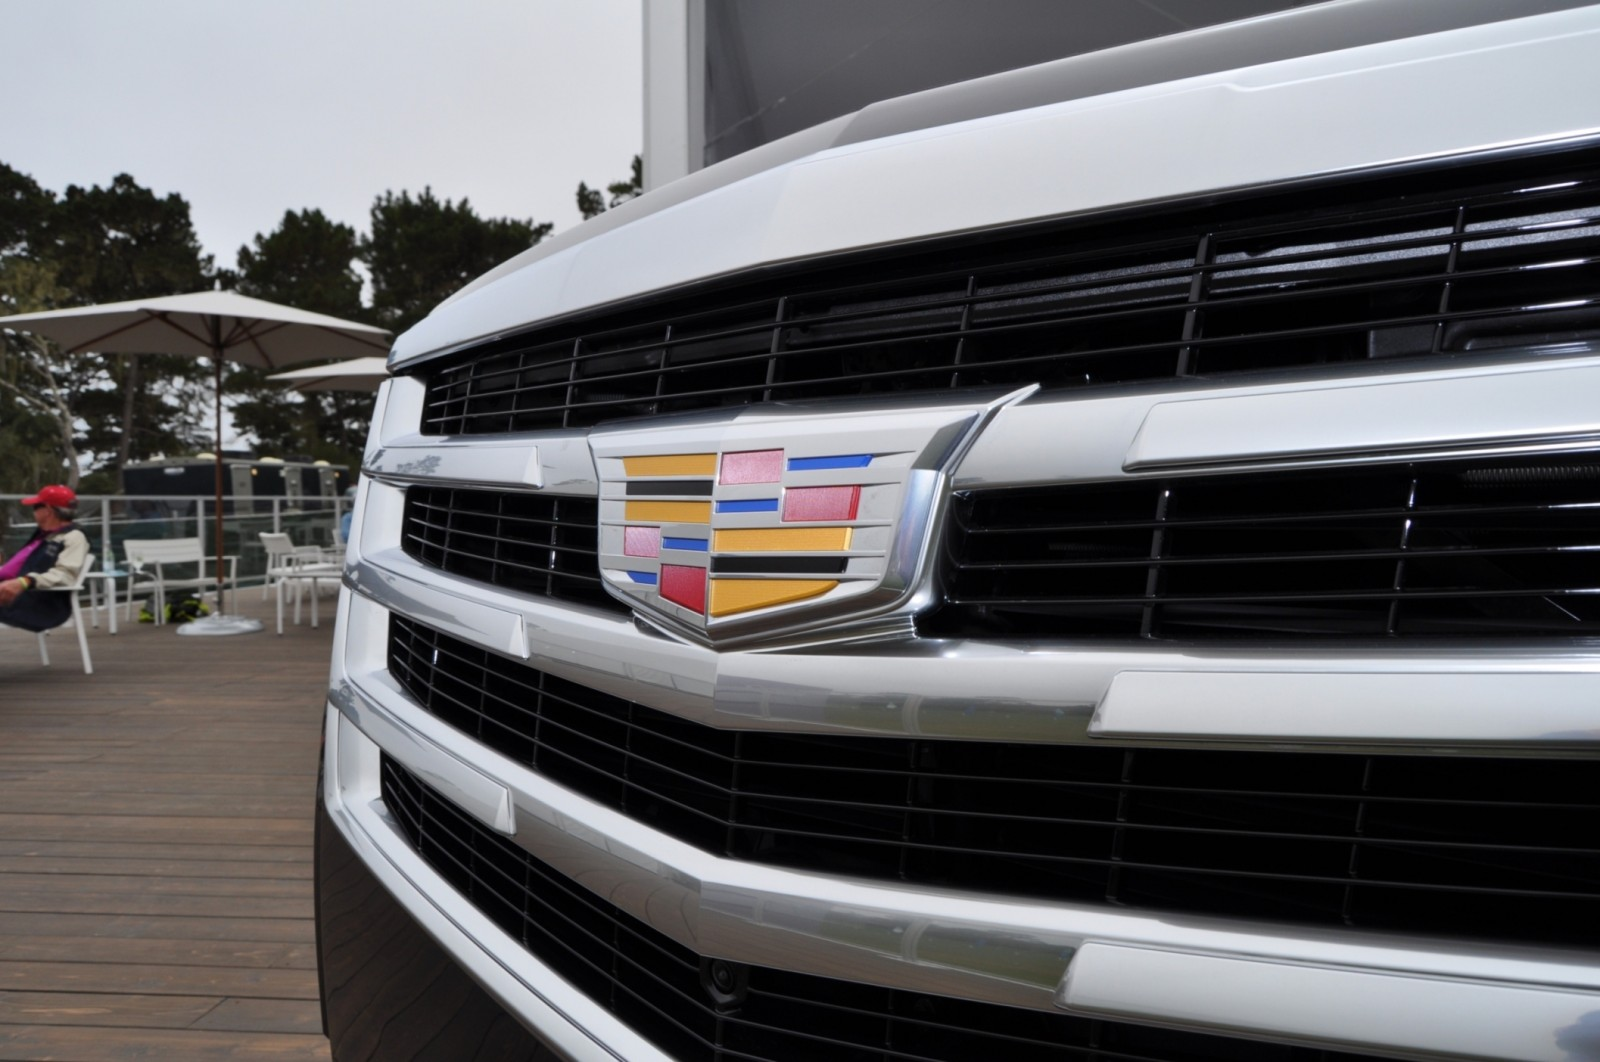 2015 Cadillac Escalade Platinum and Standard Model Unveiled for Pebble Beach 70